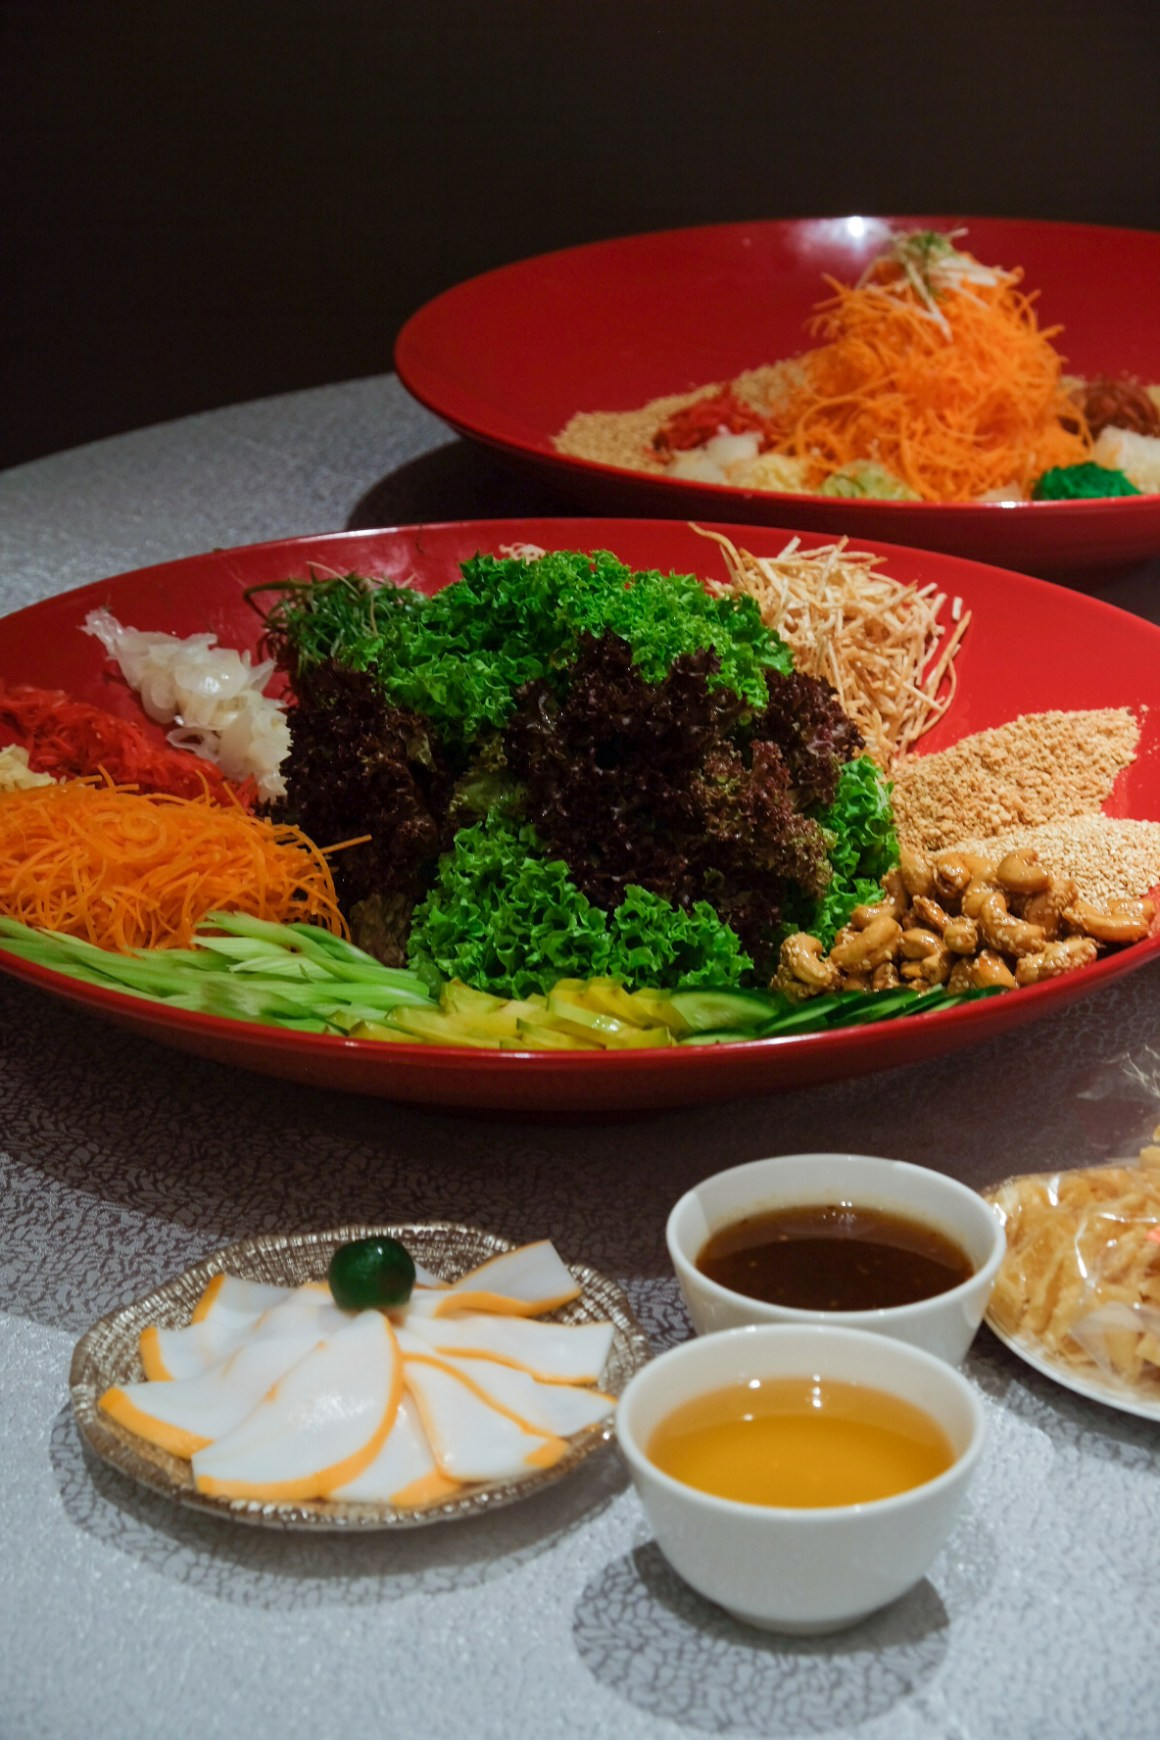 Usher 2020 Lunar New Year With Delectable Dining Options - Teochew-style Yu Sheng ($68/5pax; $138/10pax)